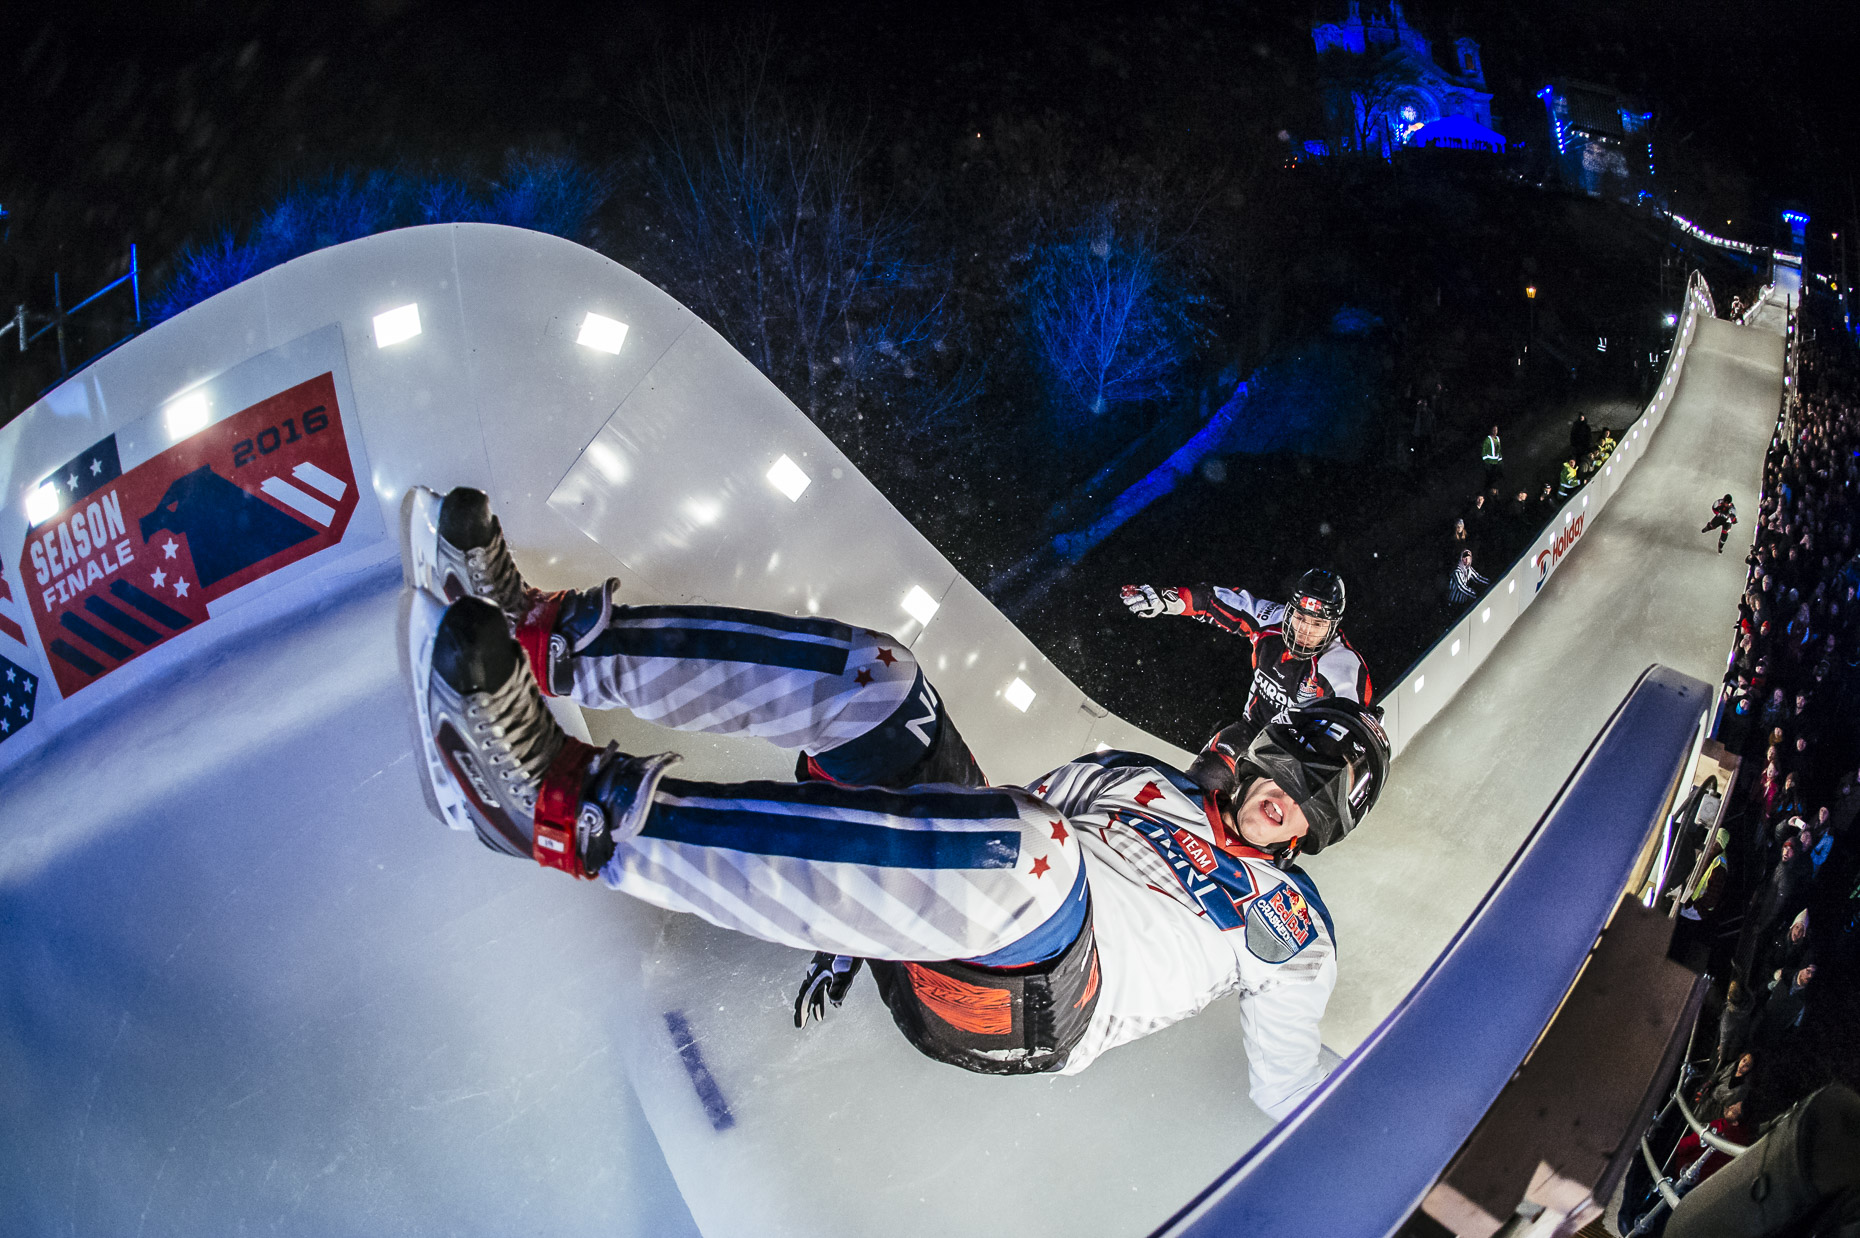 RT_20160226_CRASHEDICE_STP-2229